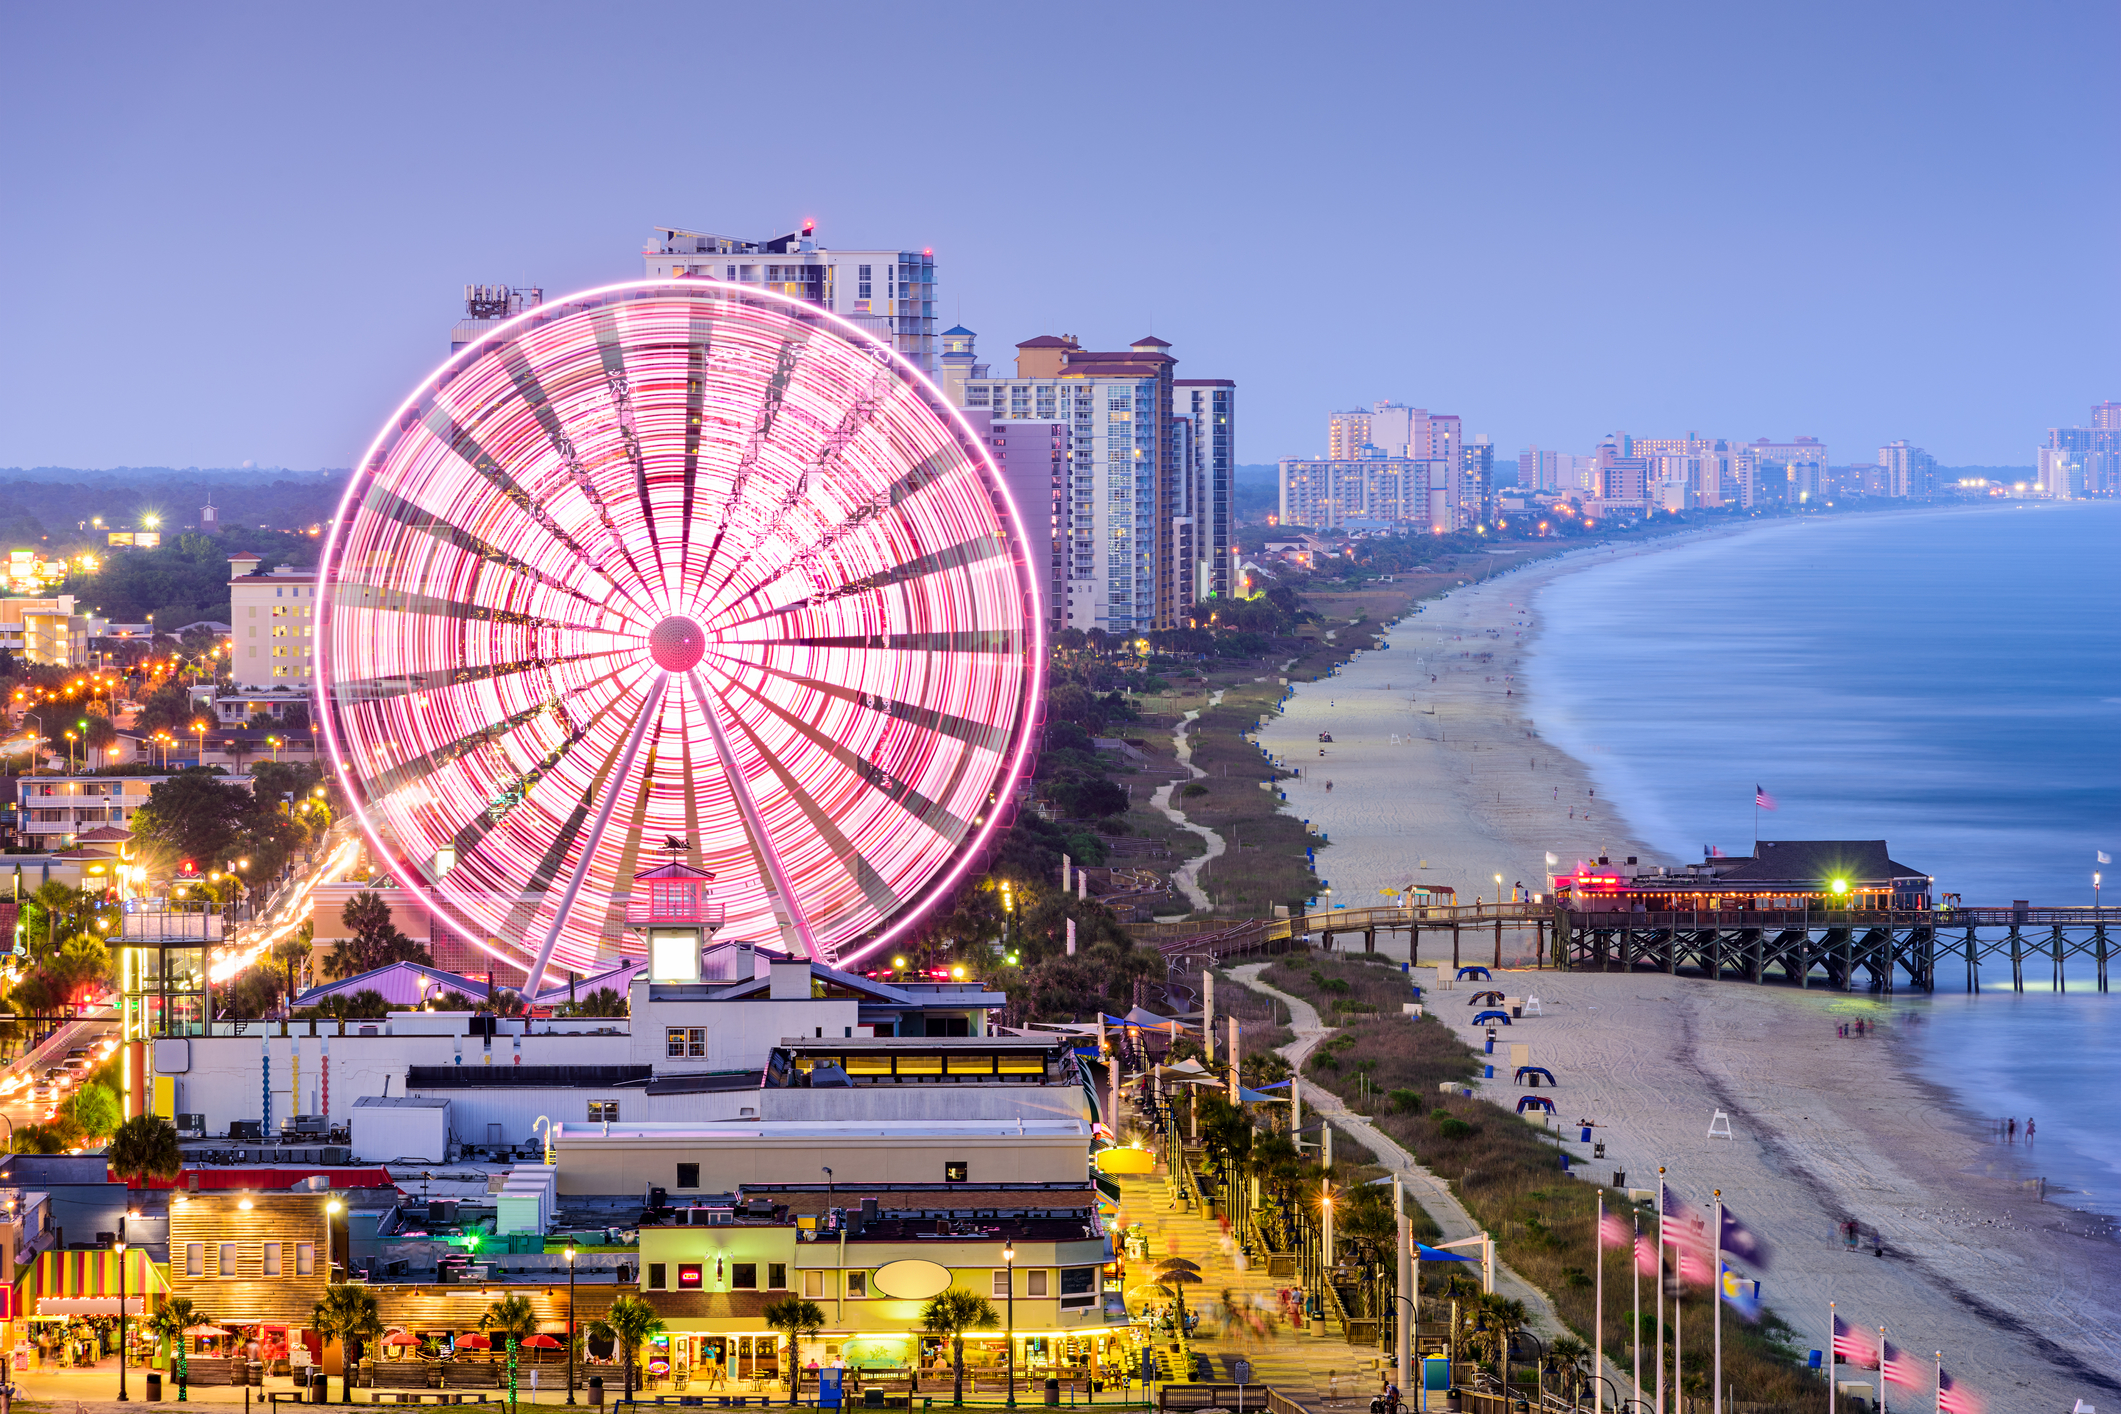 Myrtle-Beach-South-Carolina-Ferris-Wheel.jpg?mtime=20190326151249#asset:105313